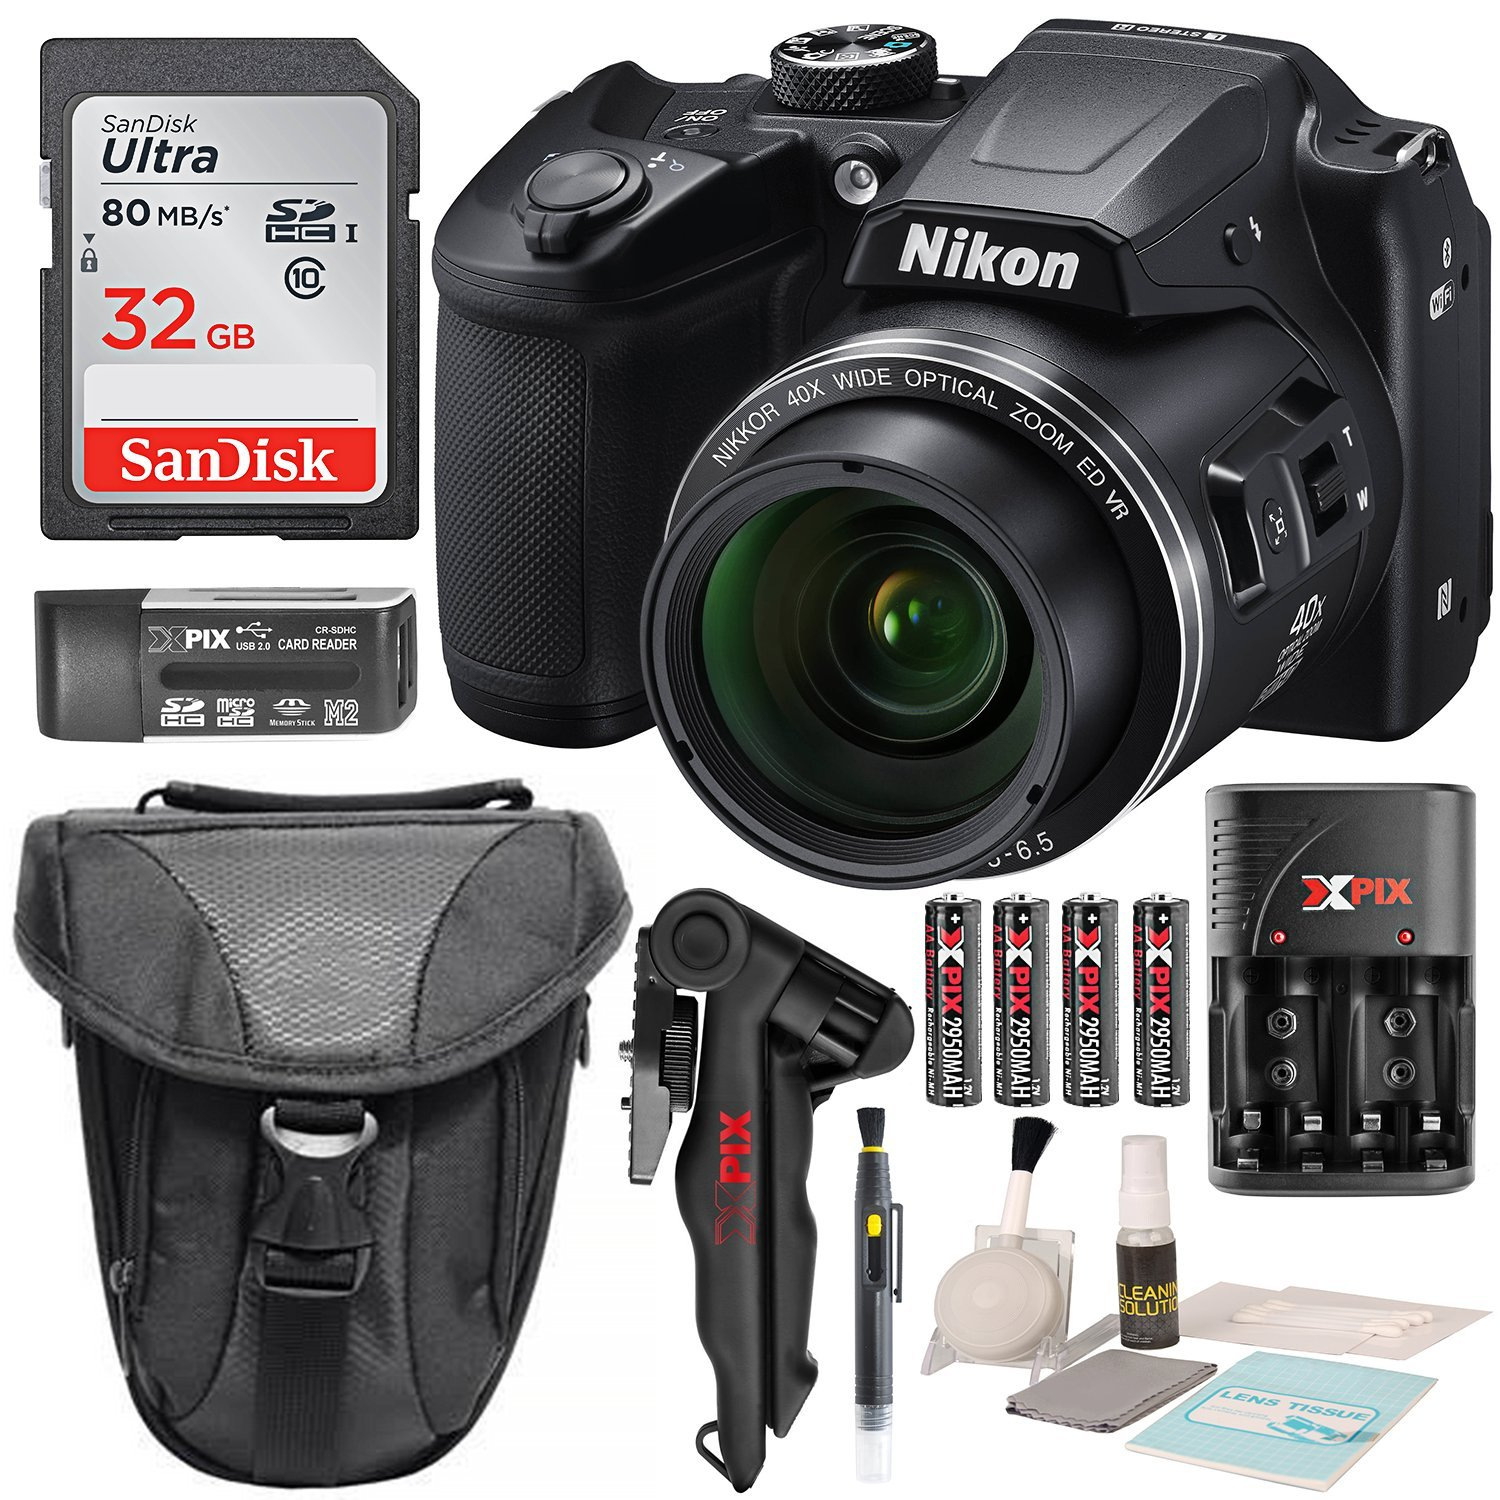 Nikon COOLPIX B500 Digital Camera along with 32GB SDHC Memory Card and Deluxe Accessory Bundle with Cleaning Kit by Nikon